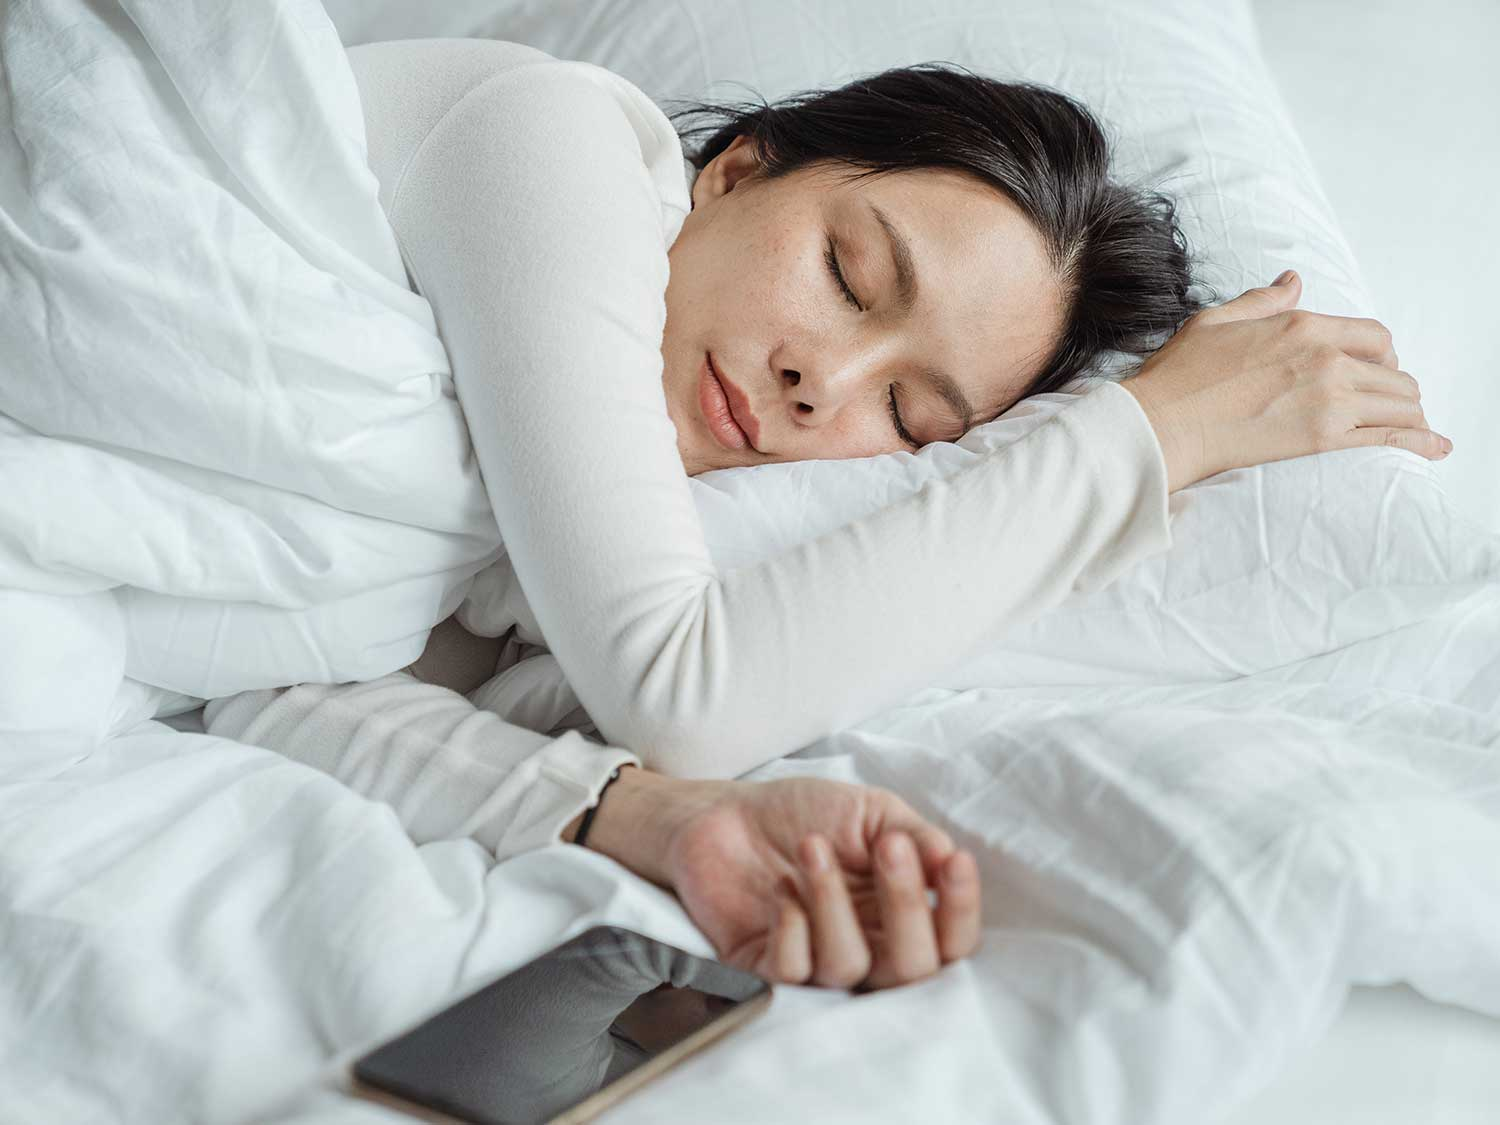 woman sleeping on pillows and blankets